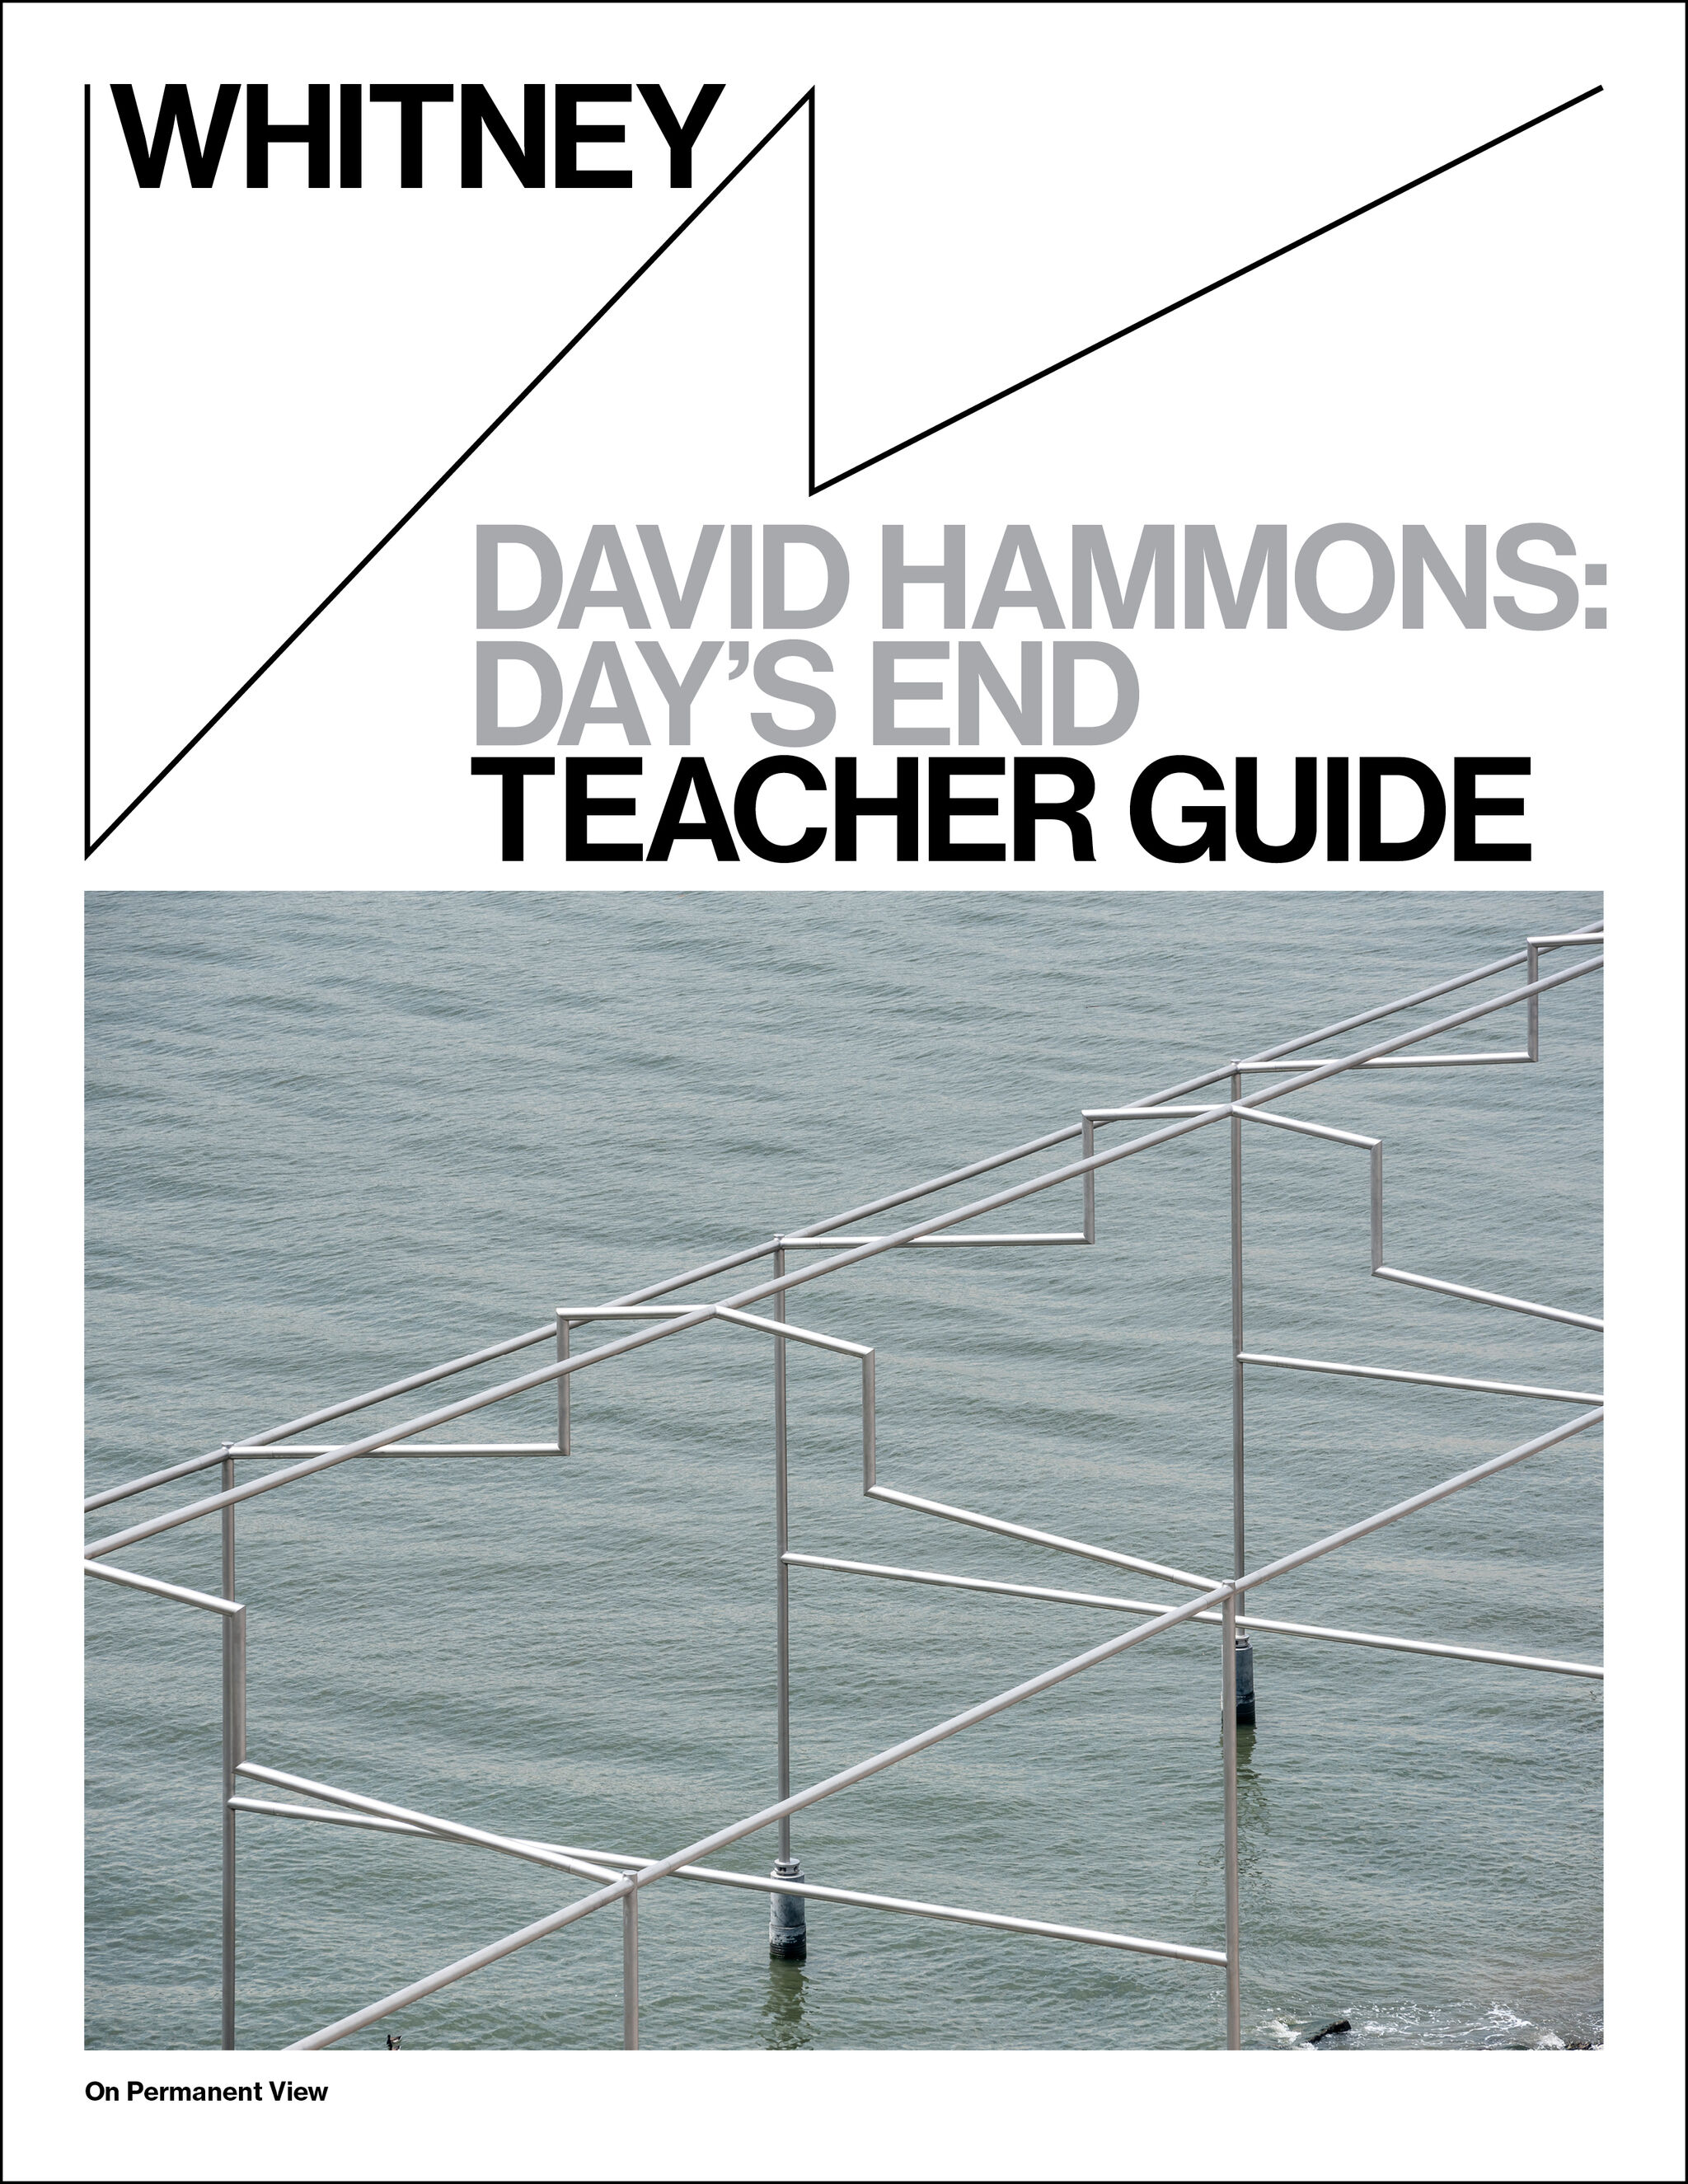 Cover image of Teacher Guide for David Hammons: Day's End, with image of Day's End sculpture against rippling water.